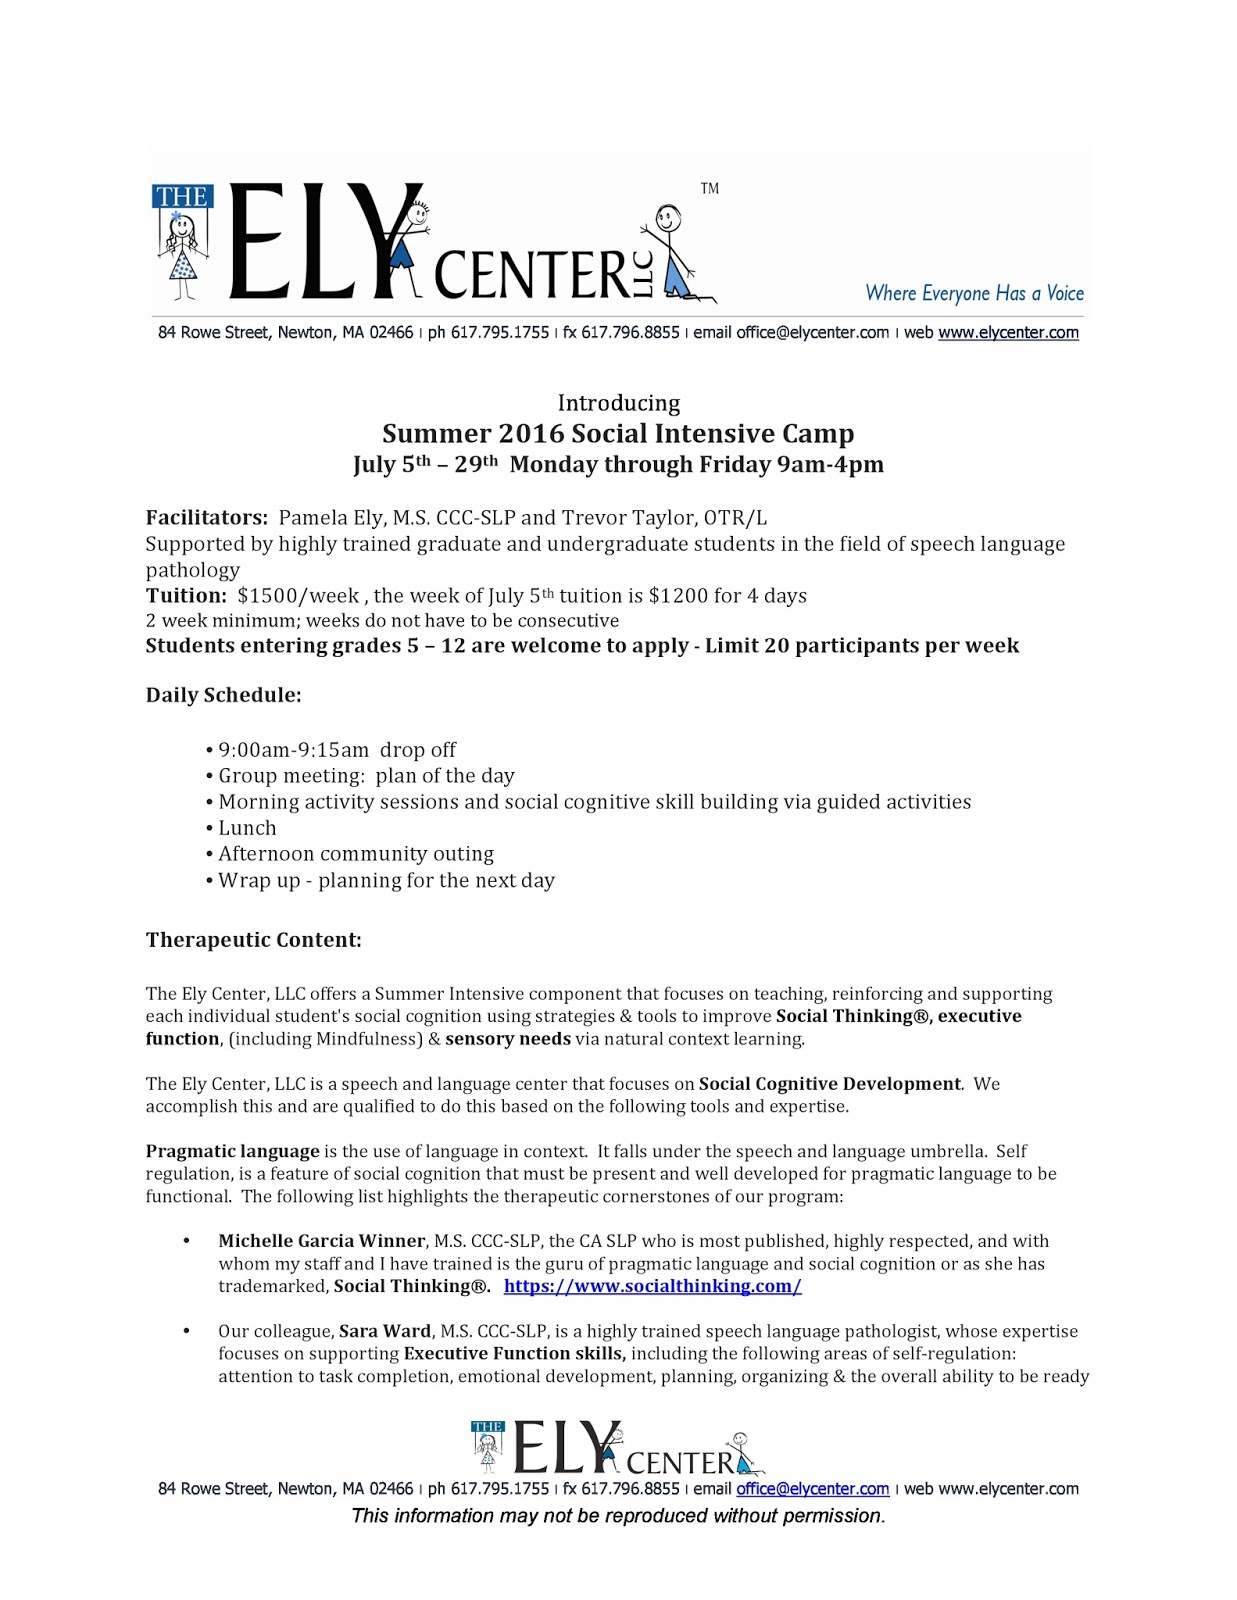 Social Intensive Summer Camps At Ely >> NESCA News & Notes: Social Intensive Summer Camps at The Ely Center in Newton: Registration Now Open